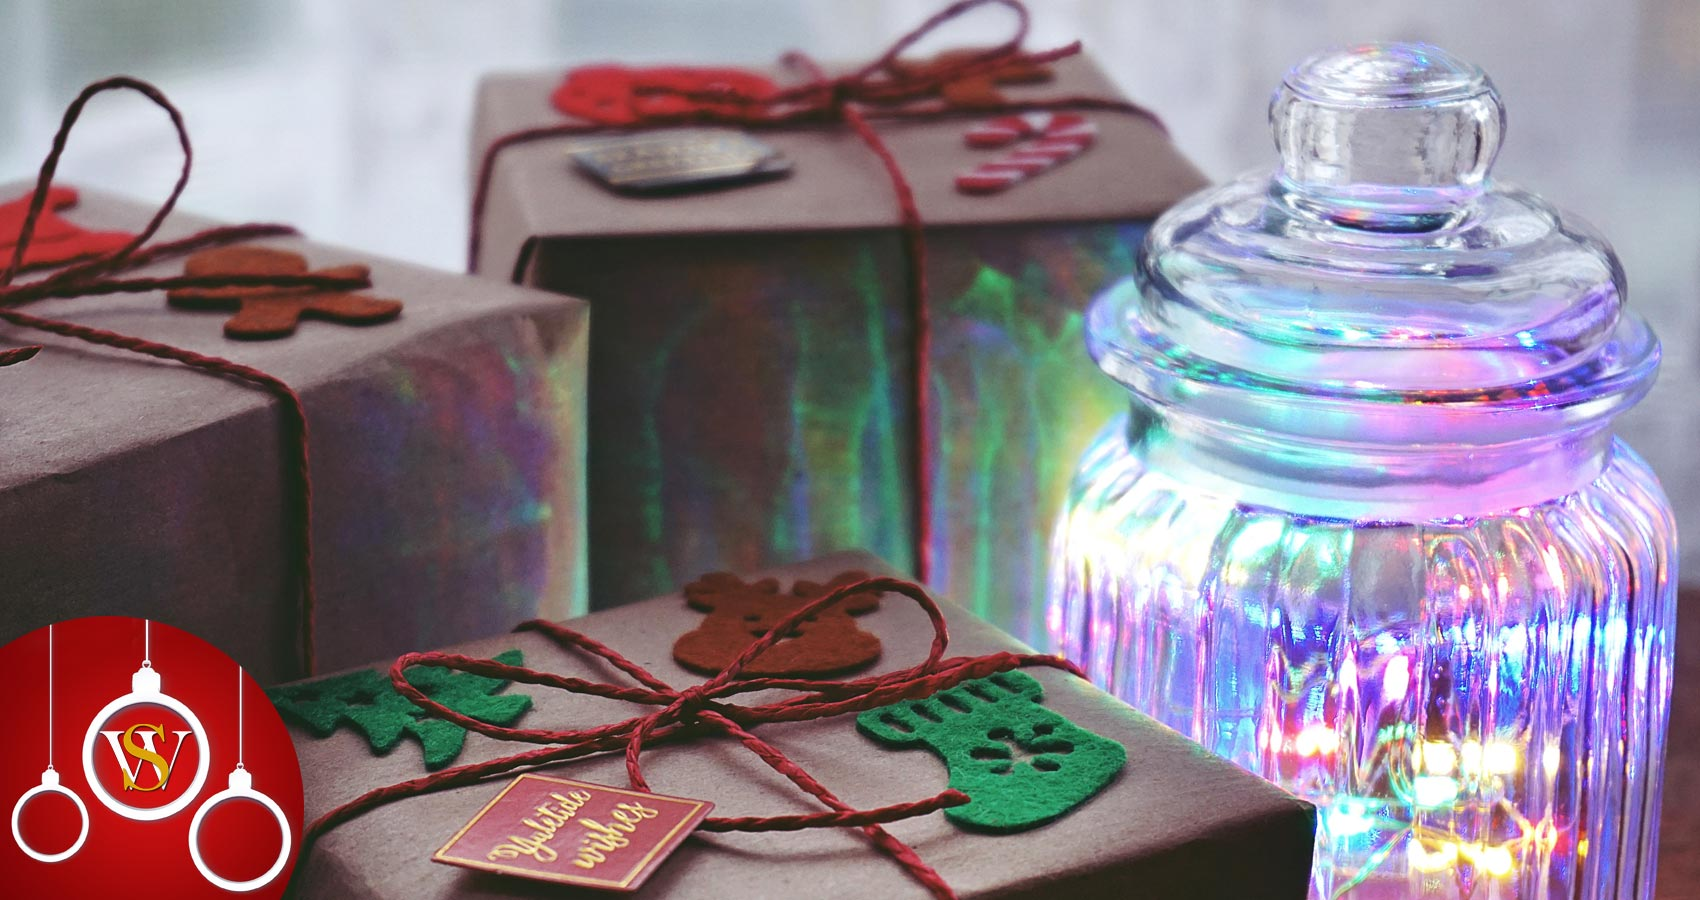 The Magic of Christmas, short story by Philomena Daly at Spillwords.com